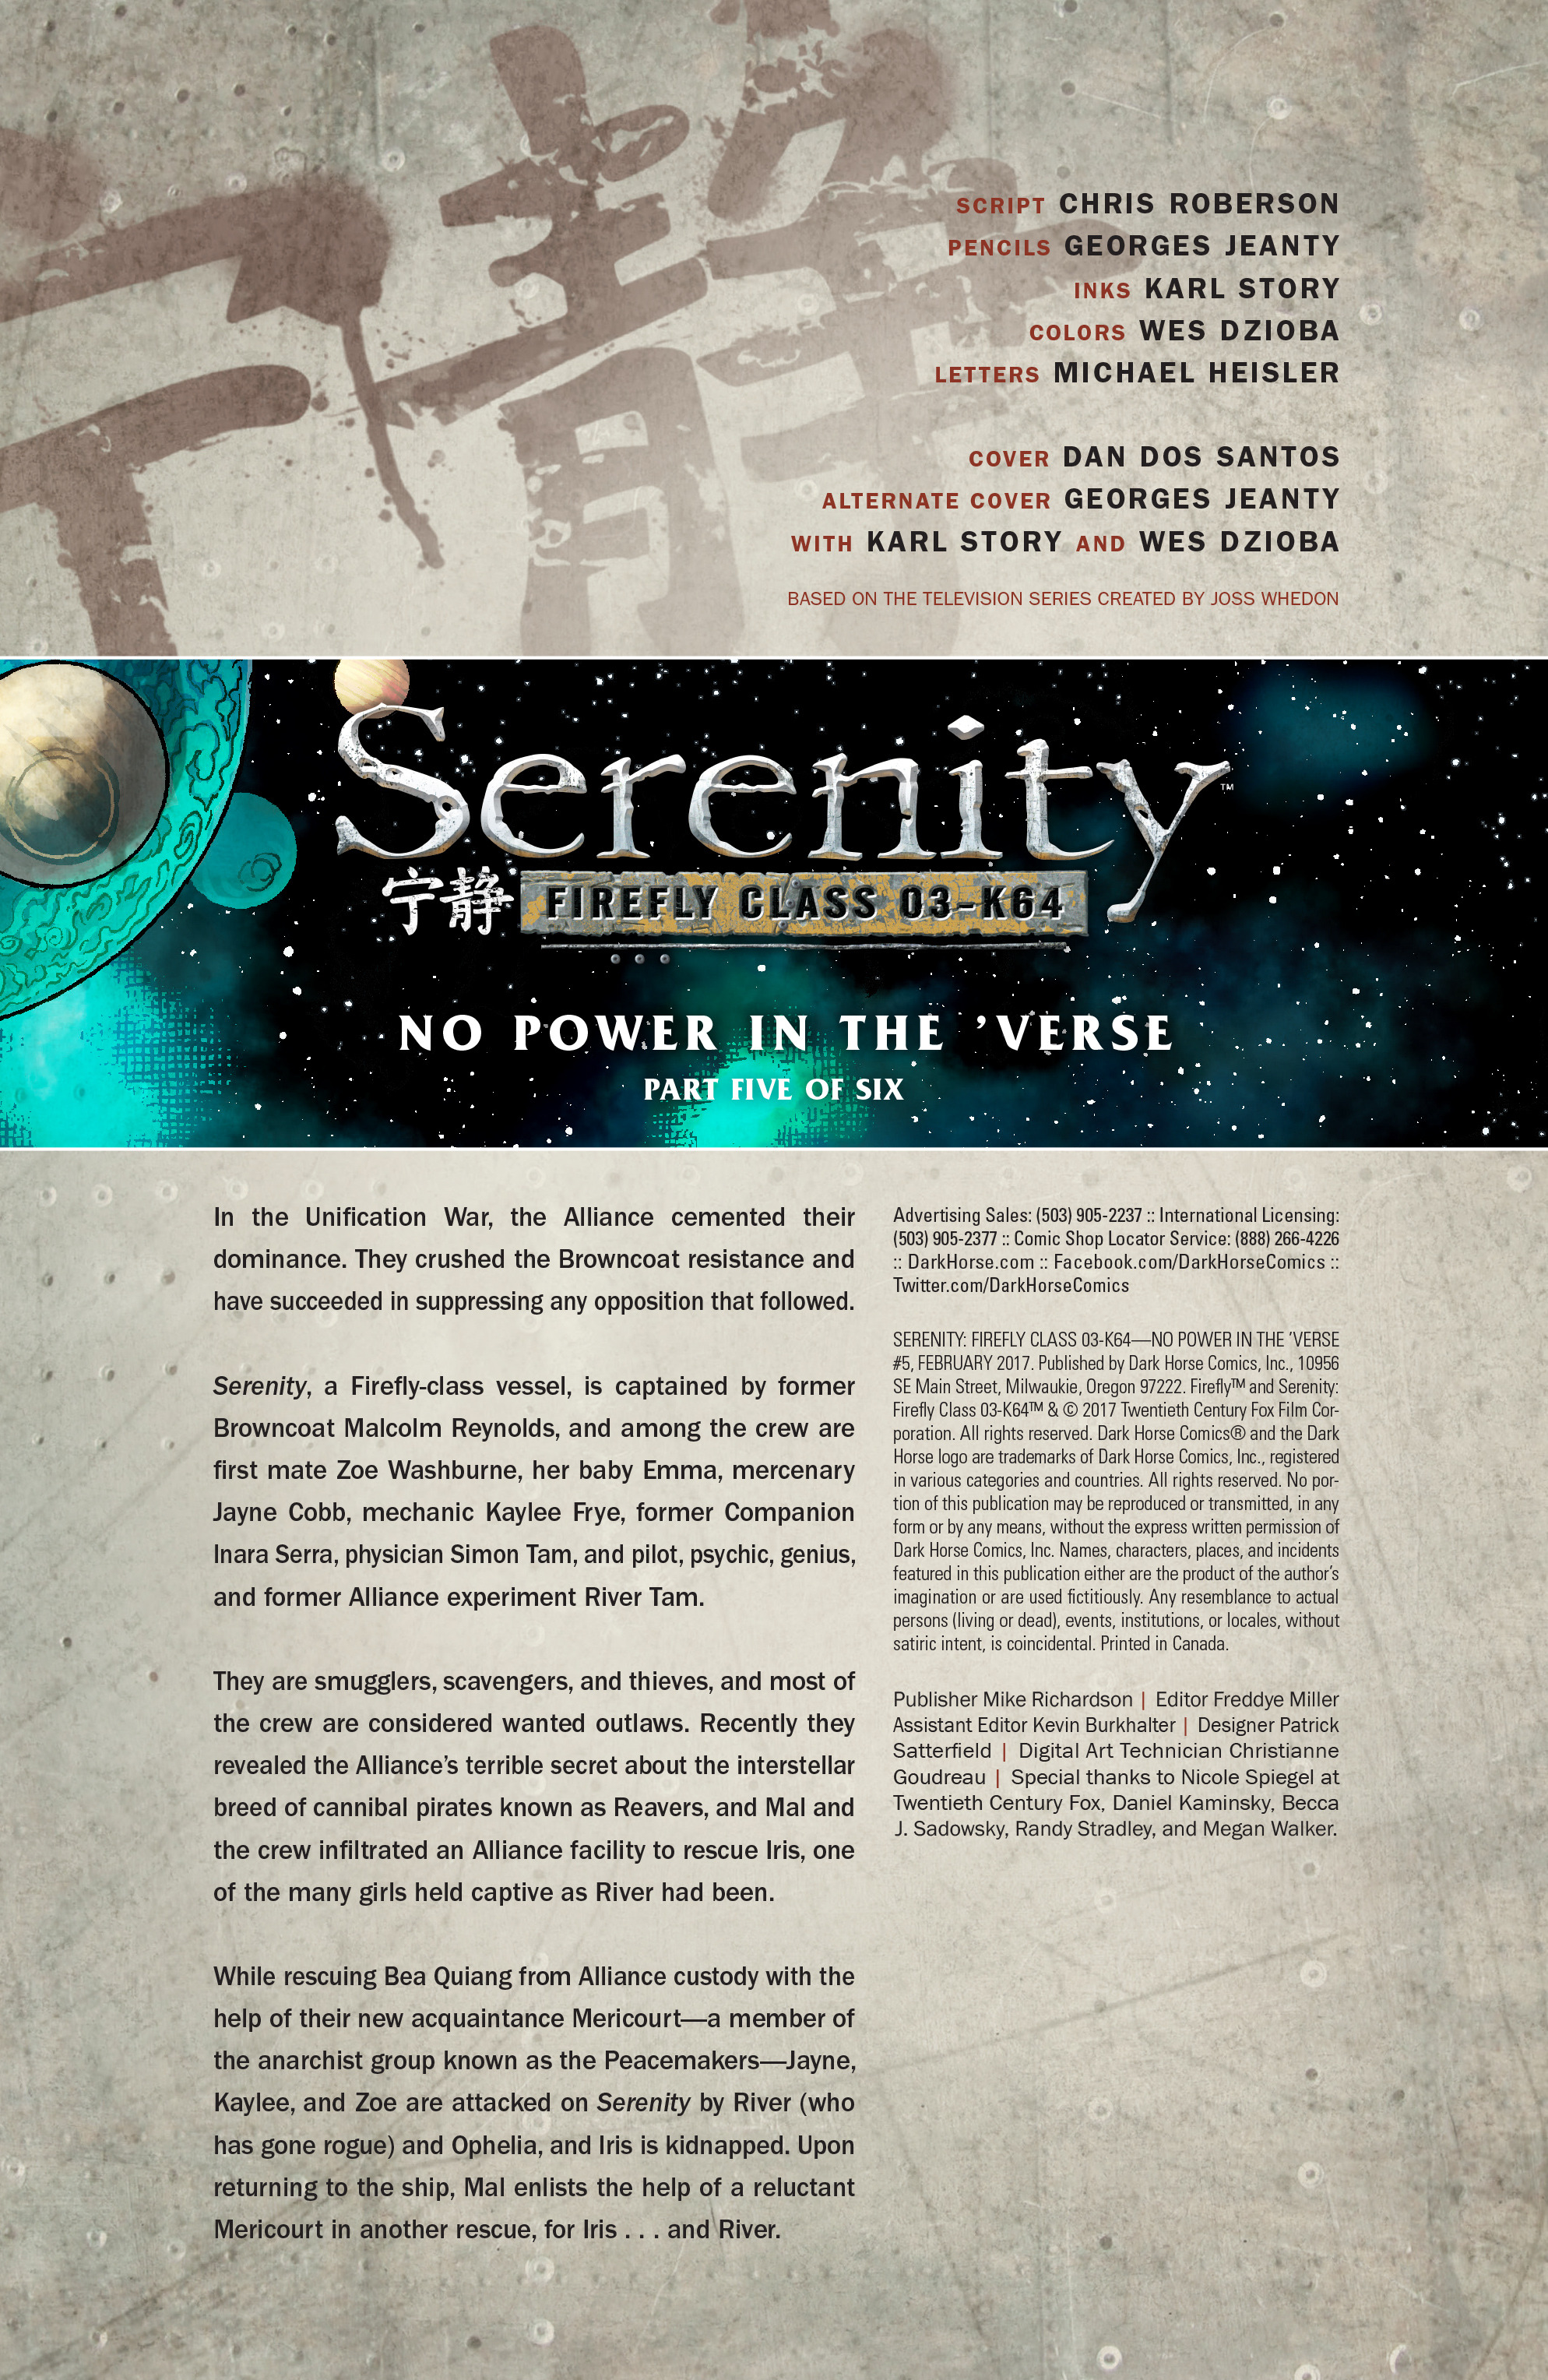 Read online Serenity: Firefly Class 03-K64 – No Power in the 'Verse comic -  Issue #5 - 3